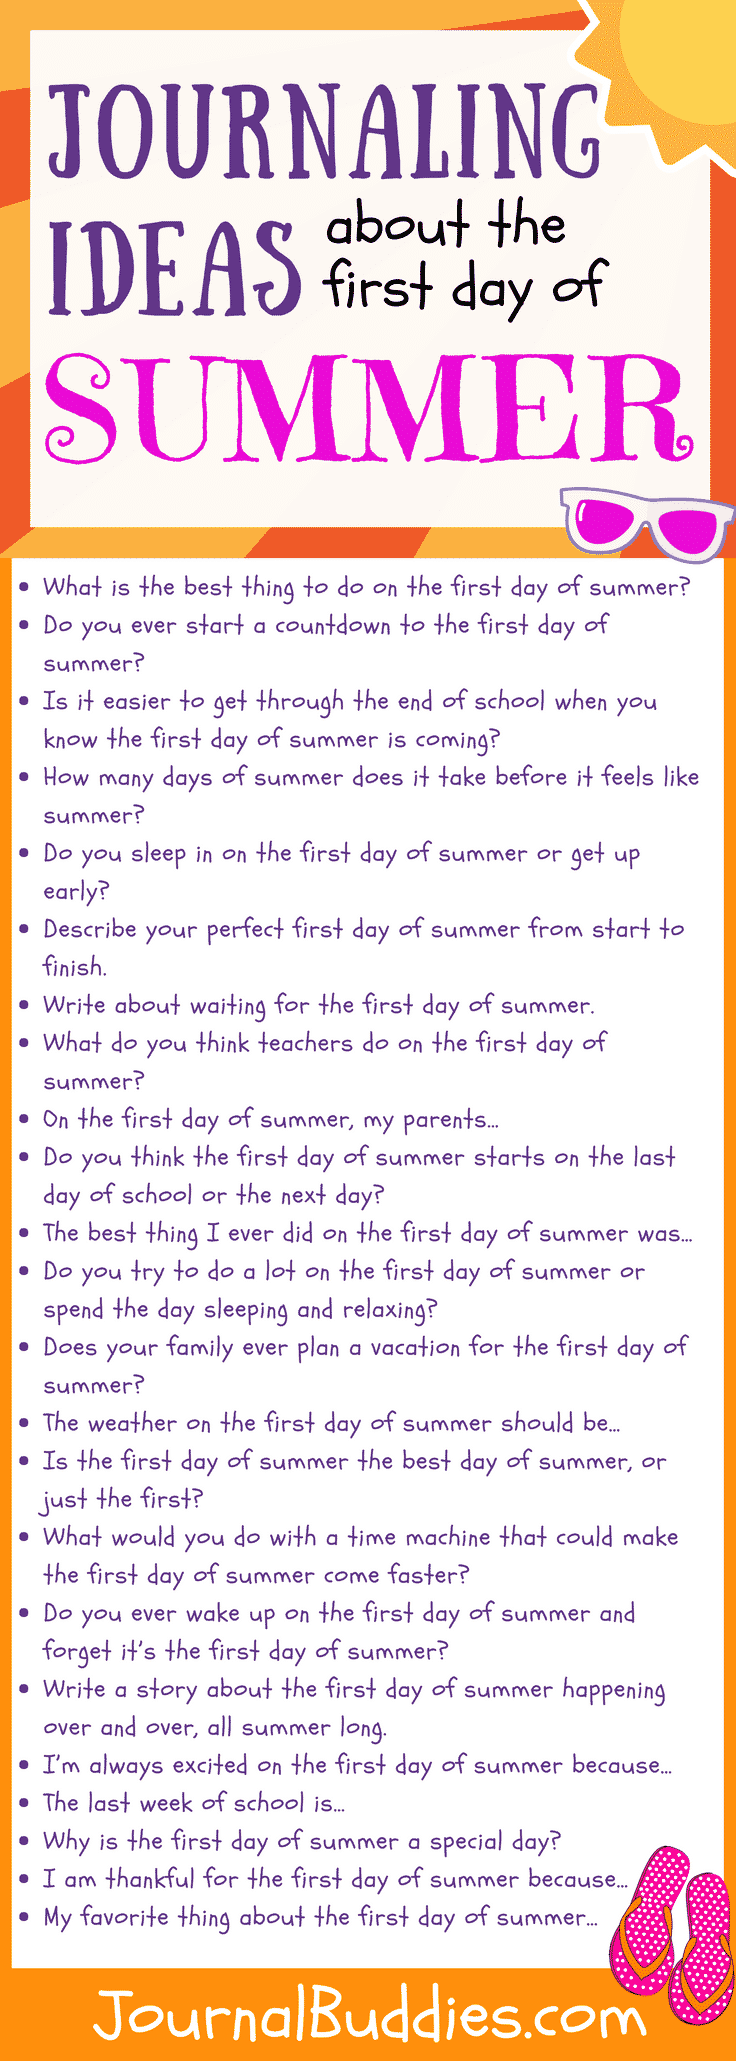 Summer Journaling -- With this list of prompts, indulge your students' anticipation by giving them the chance to daydream about the first day of summer.